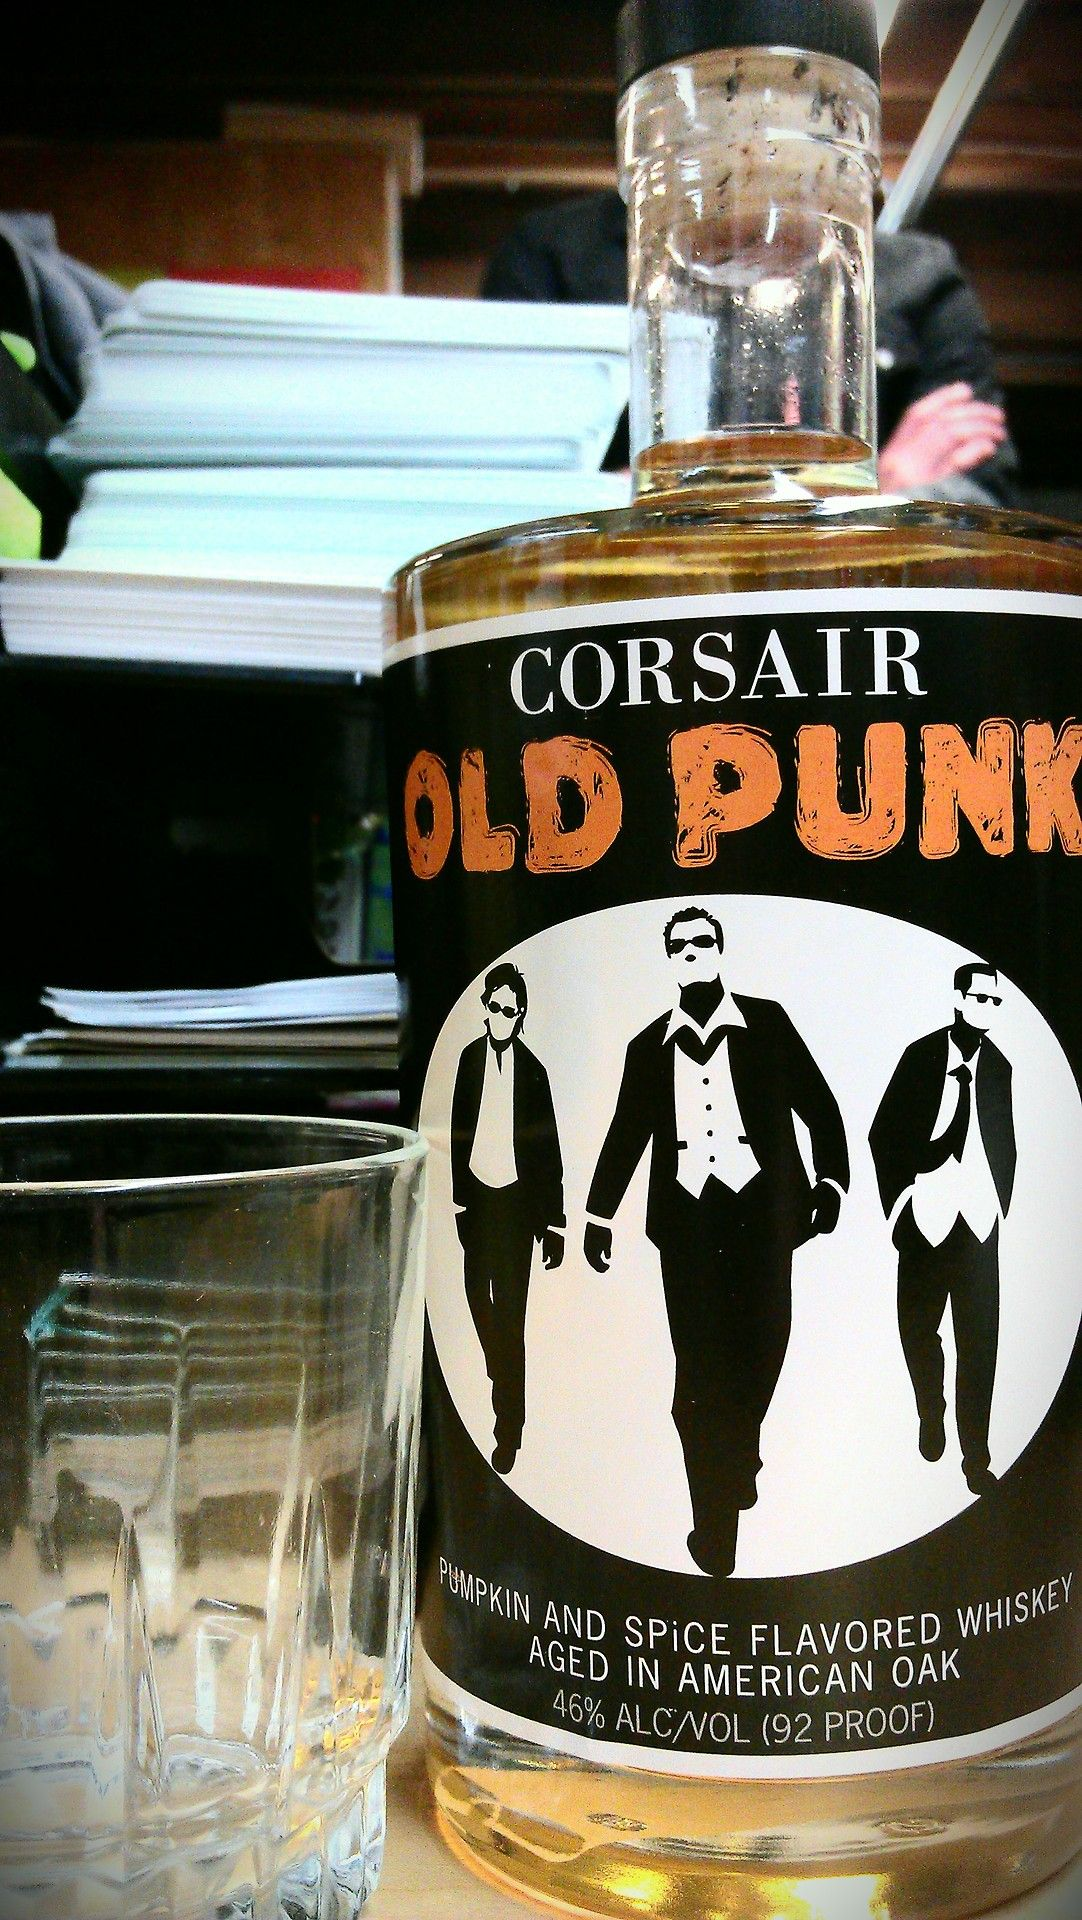 Corsair Old Punk Pumpkin and Spice Flavored Whiskey Confession time. You know how folks go wacky with excitement over pumpkin lattes and pumpkin everything every October? I don't get it. There are a couple pumpkin beers I enjoy but most of them and all the espresso drinks taste really grossly synthetic. So, I braced myself for that but what I got was something entirely surprising. It's pumpkin and spice, yes, but it's not astringent or unpleasant. It's actually quite tasty. More whiskey than…